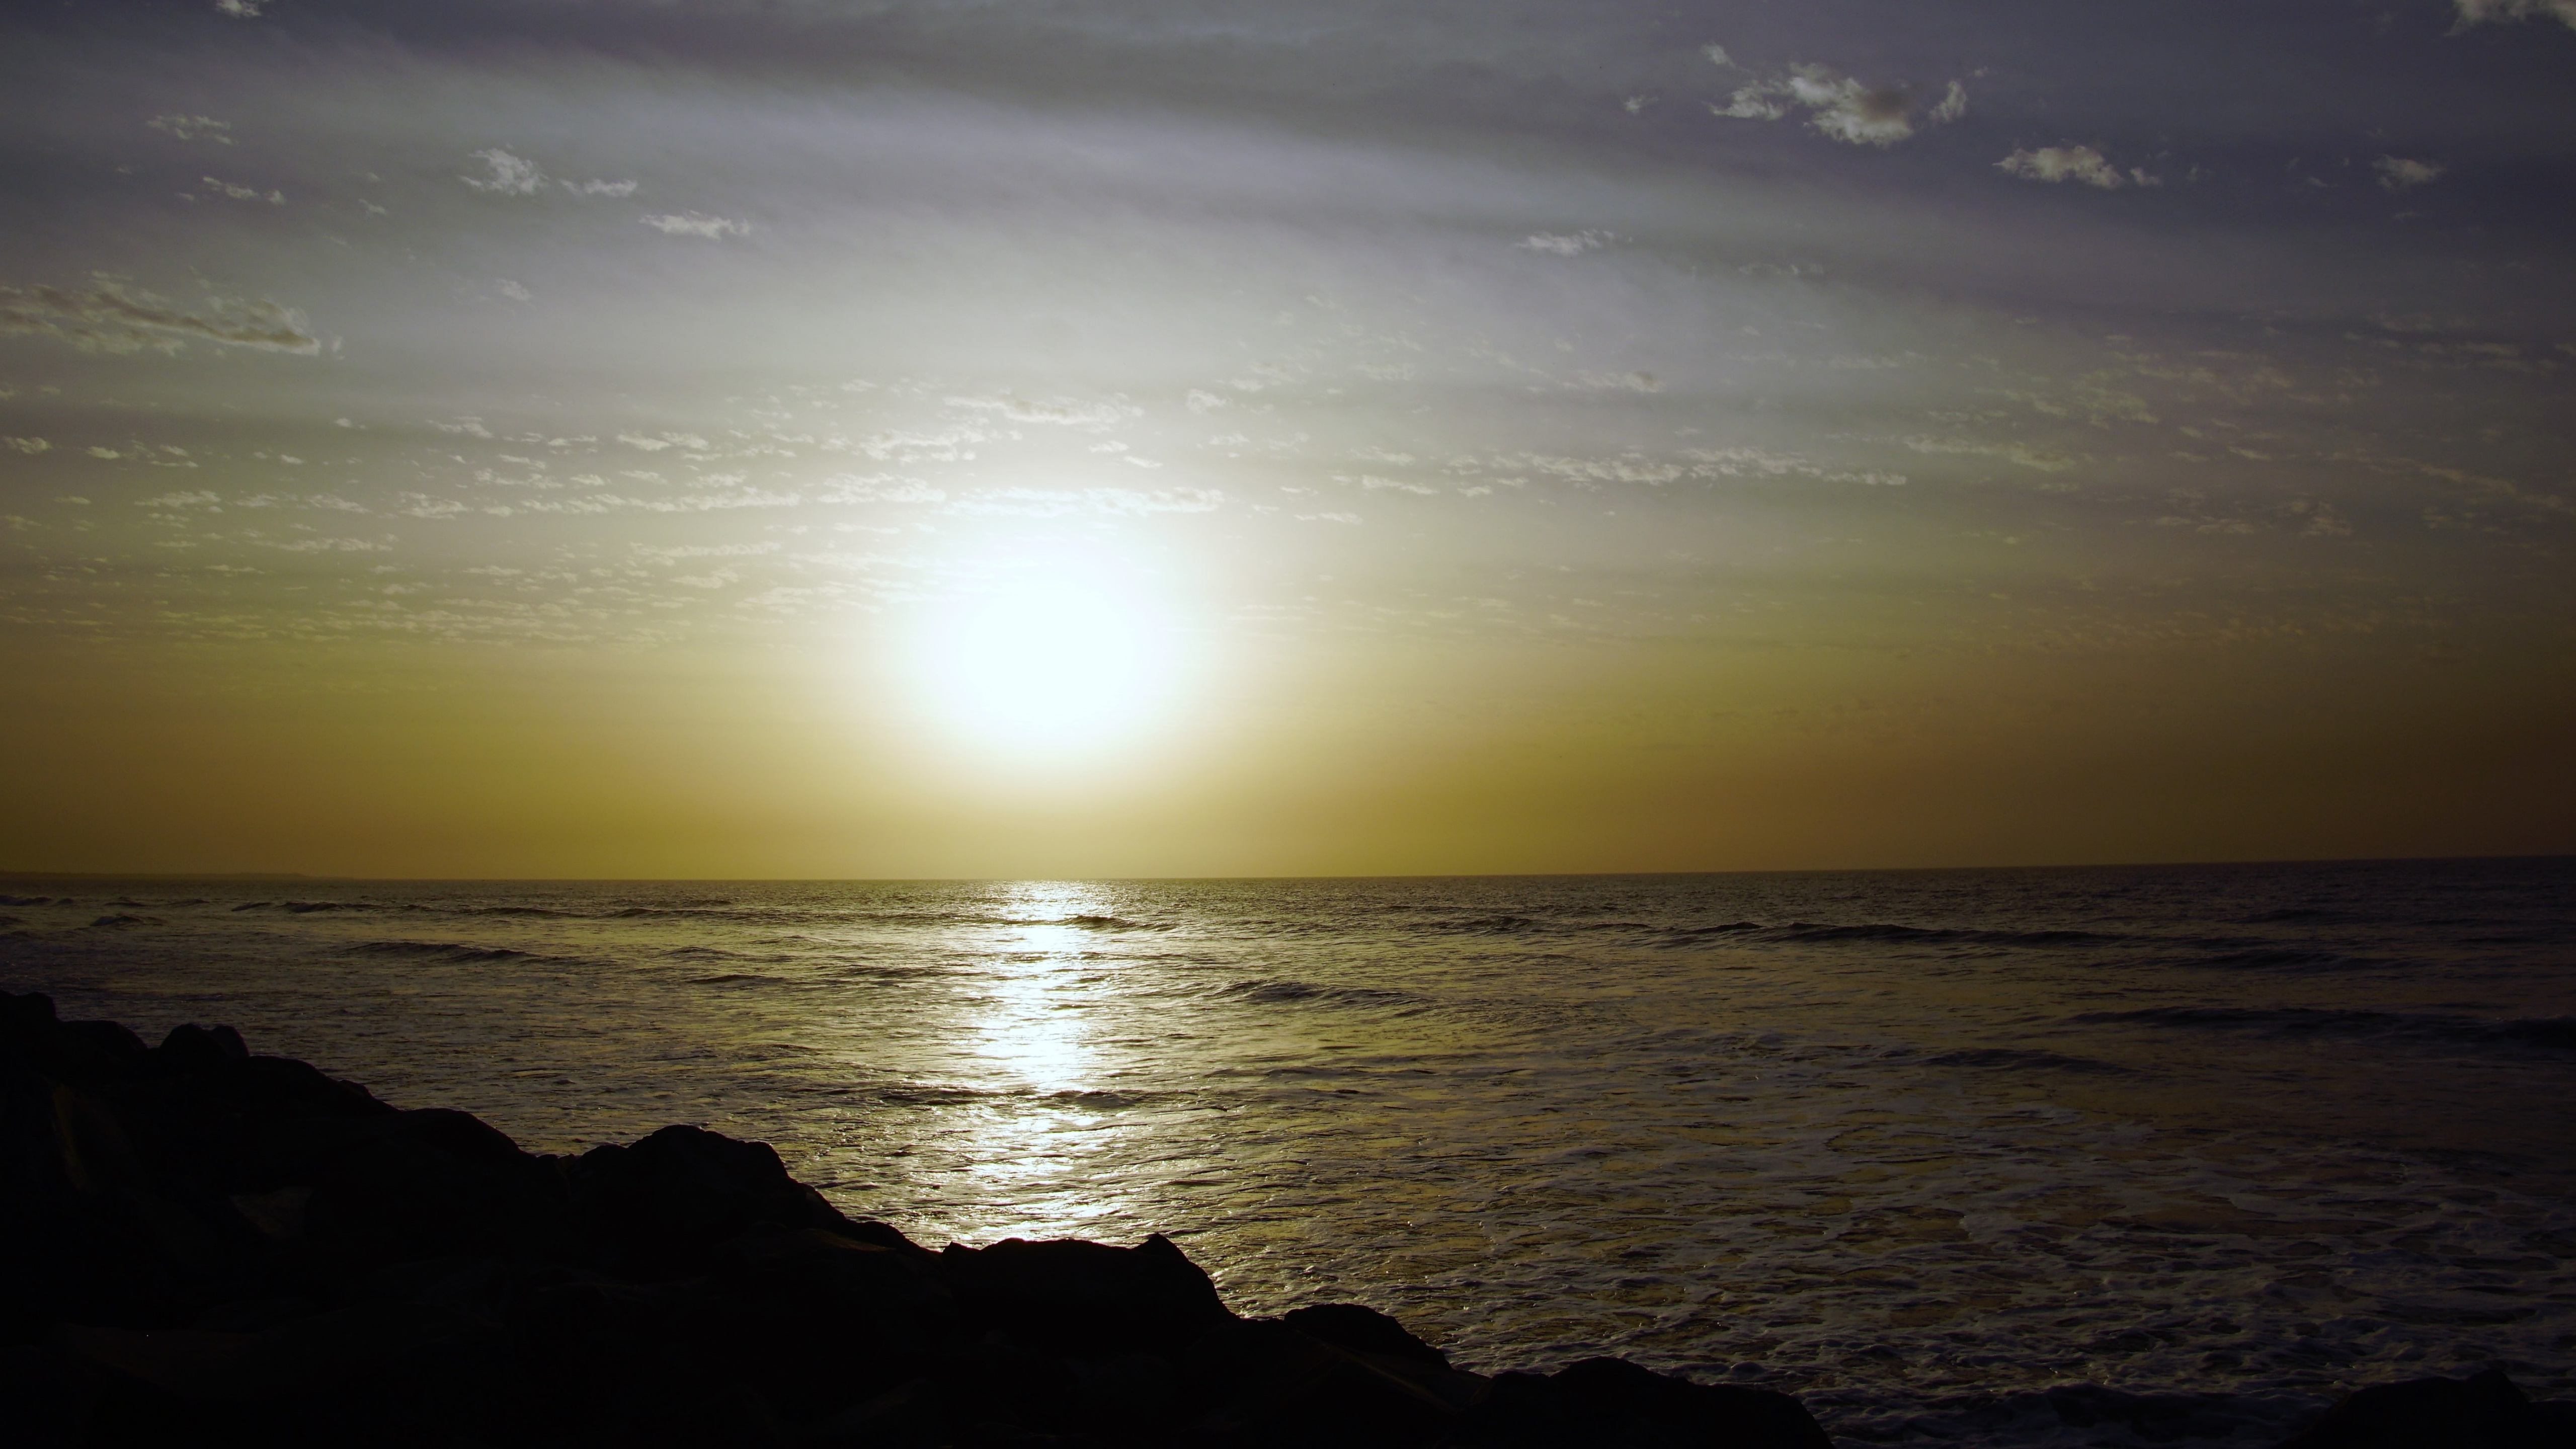 Sunset by the sea in Banjul, Gambia wallpaper